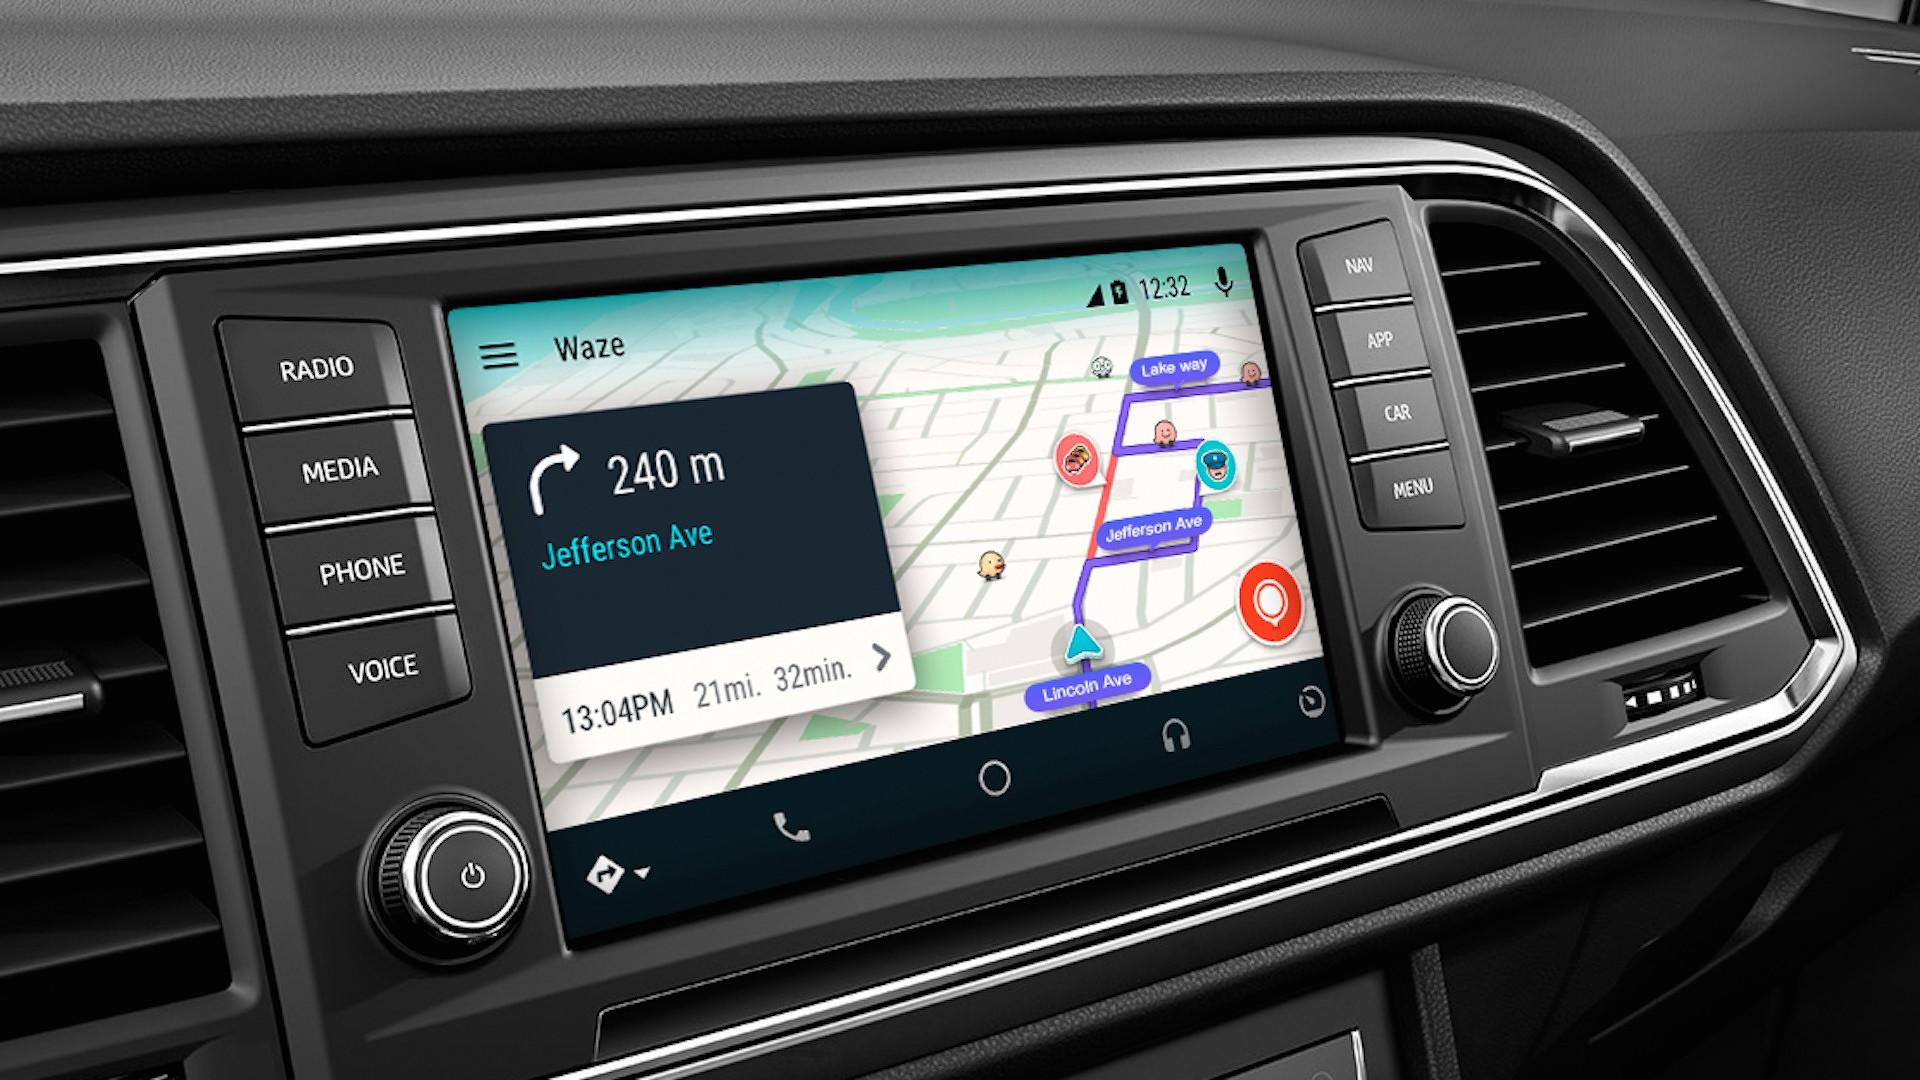 Now You Can Access Waze On Android Auto